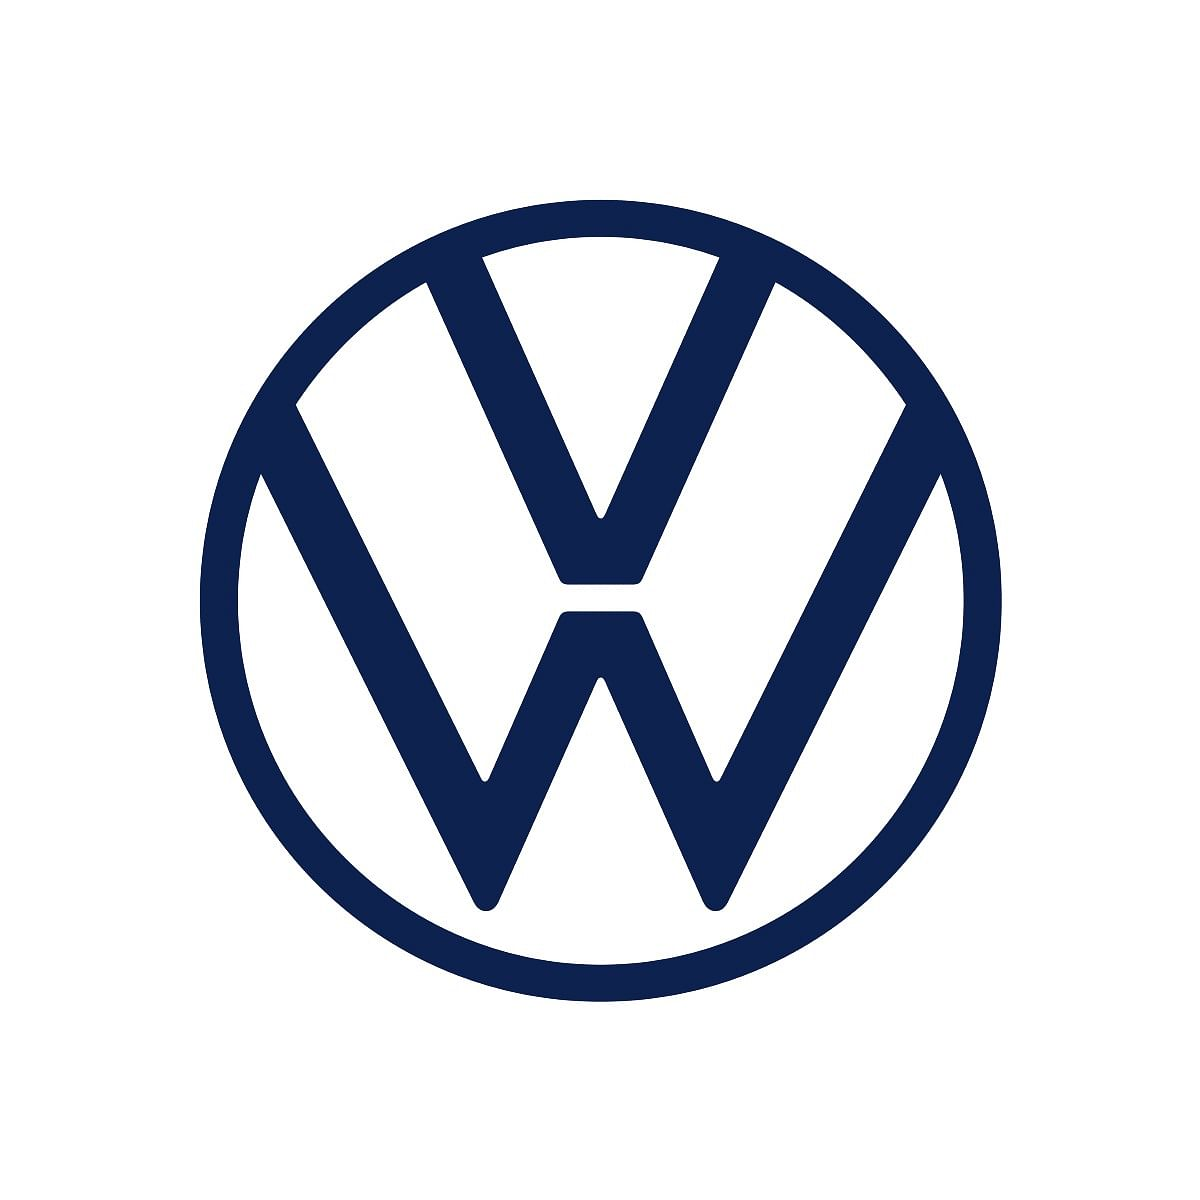 The new VW logo gets a refreshed deep blue shade